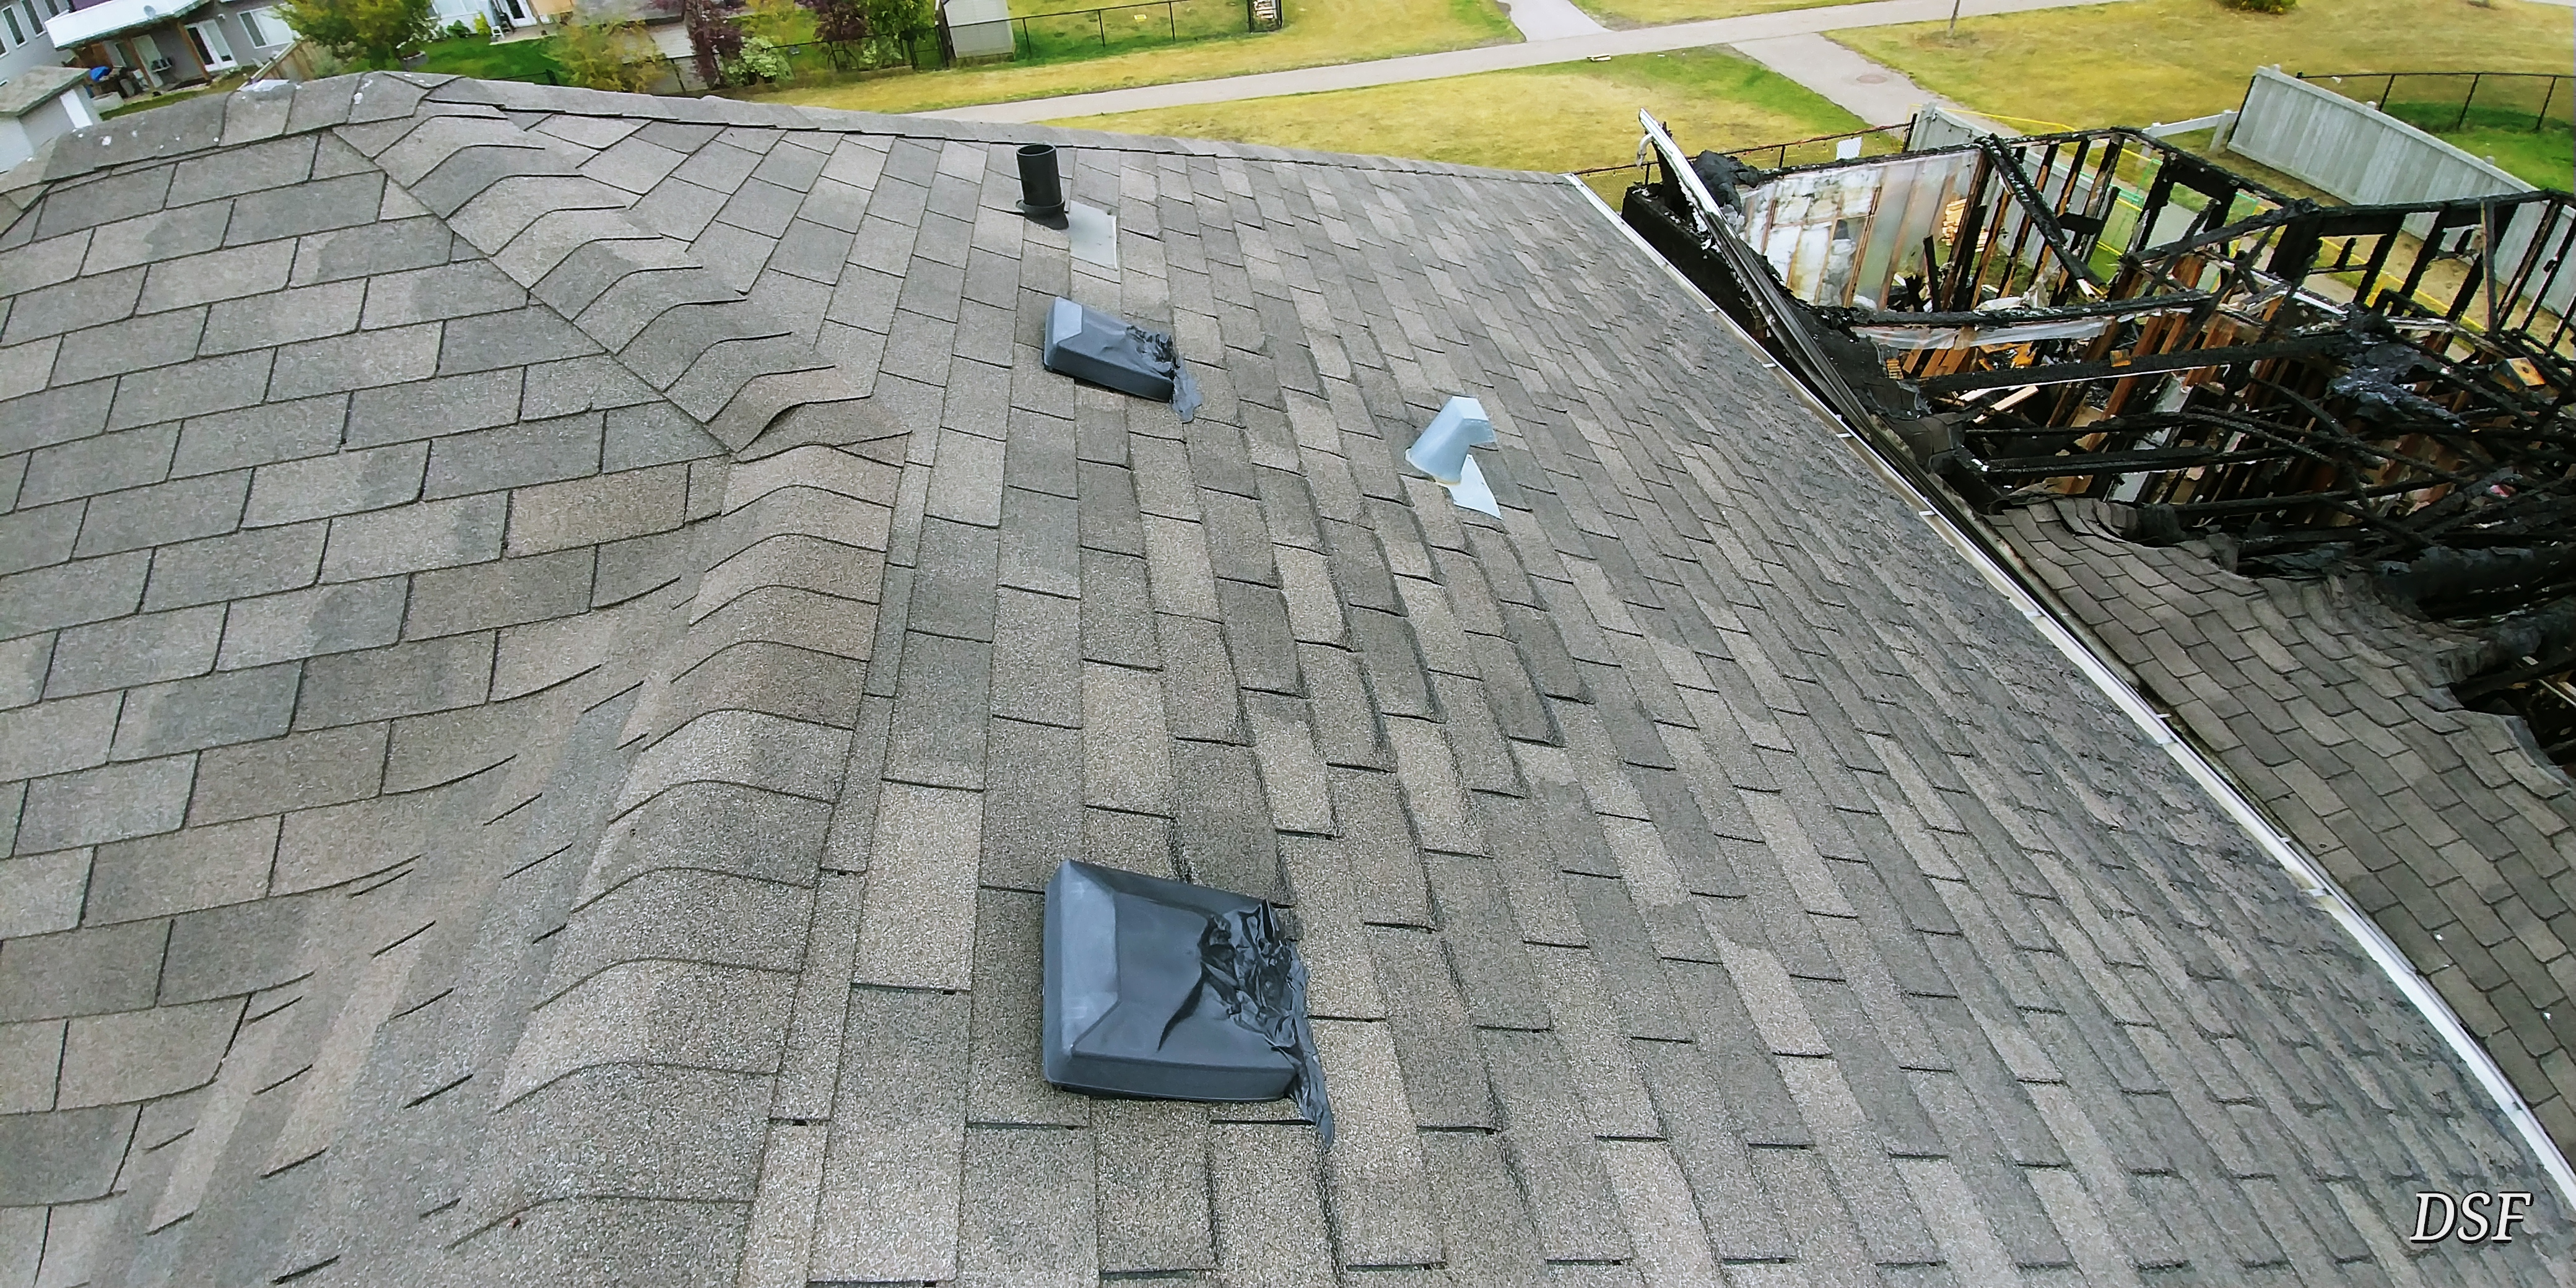 How to perform roof inspections course page 840 internachi being that these shingles are no longer in production and the roof being unmatchable i recommend a full roof replacement along with the two turtle vents sciox Image collections